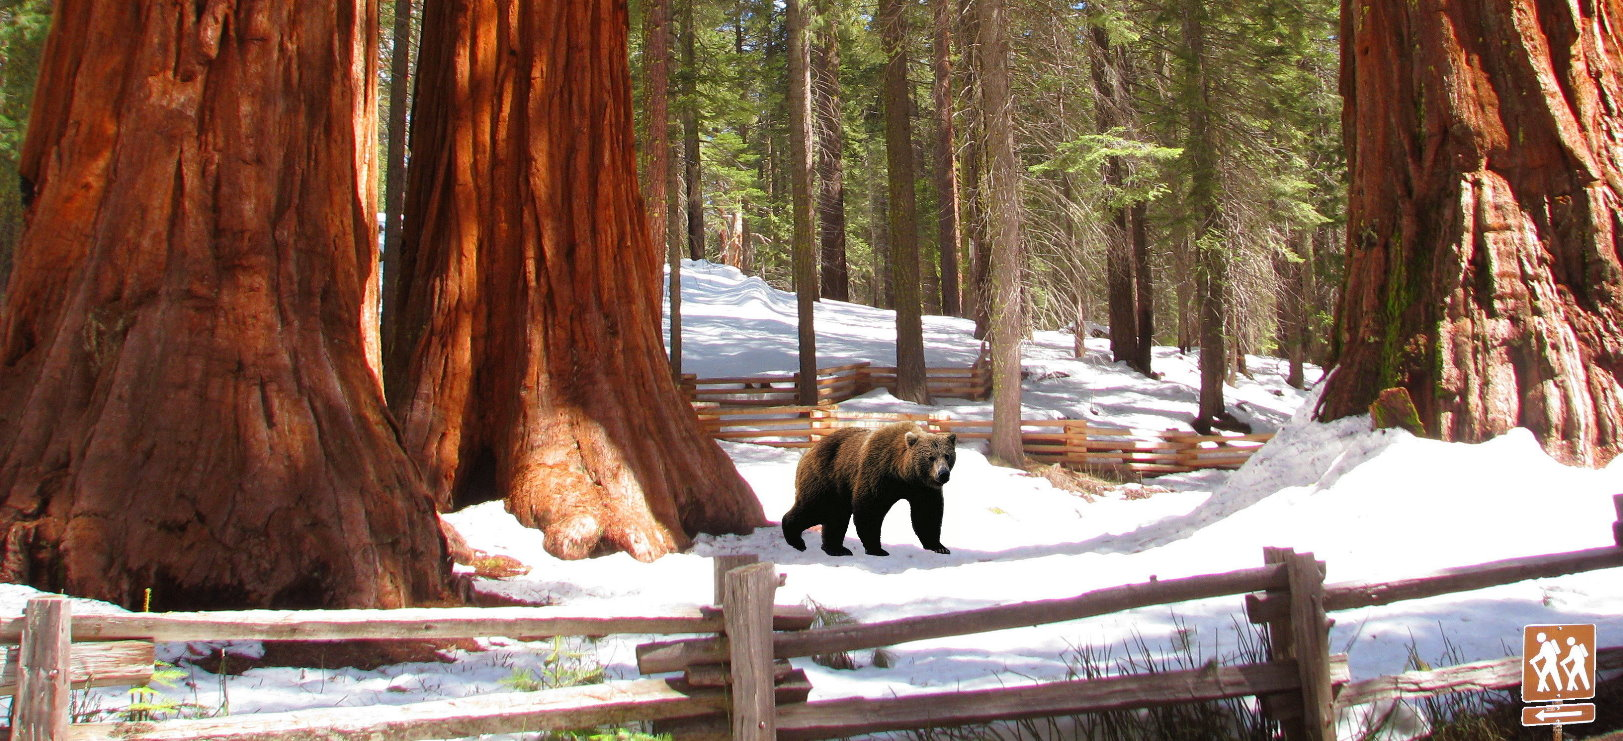 winter  trip to Yosemite Mariposa Grove of Giant Sequoias wintertime  guided tours